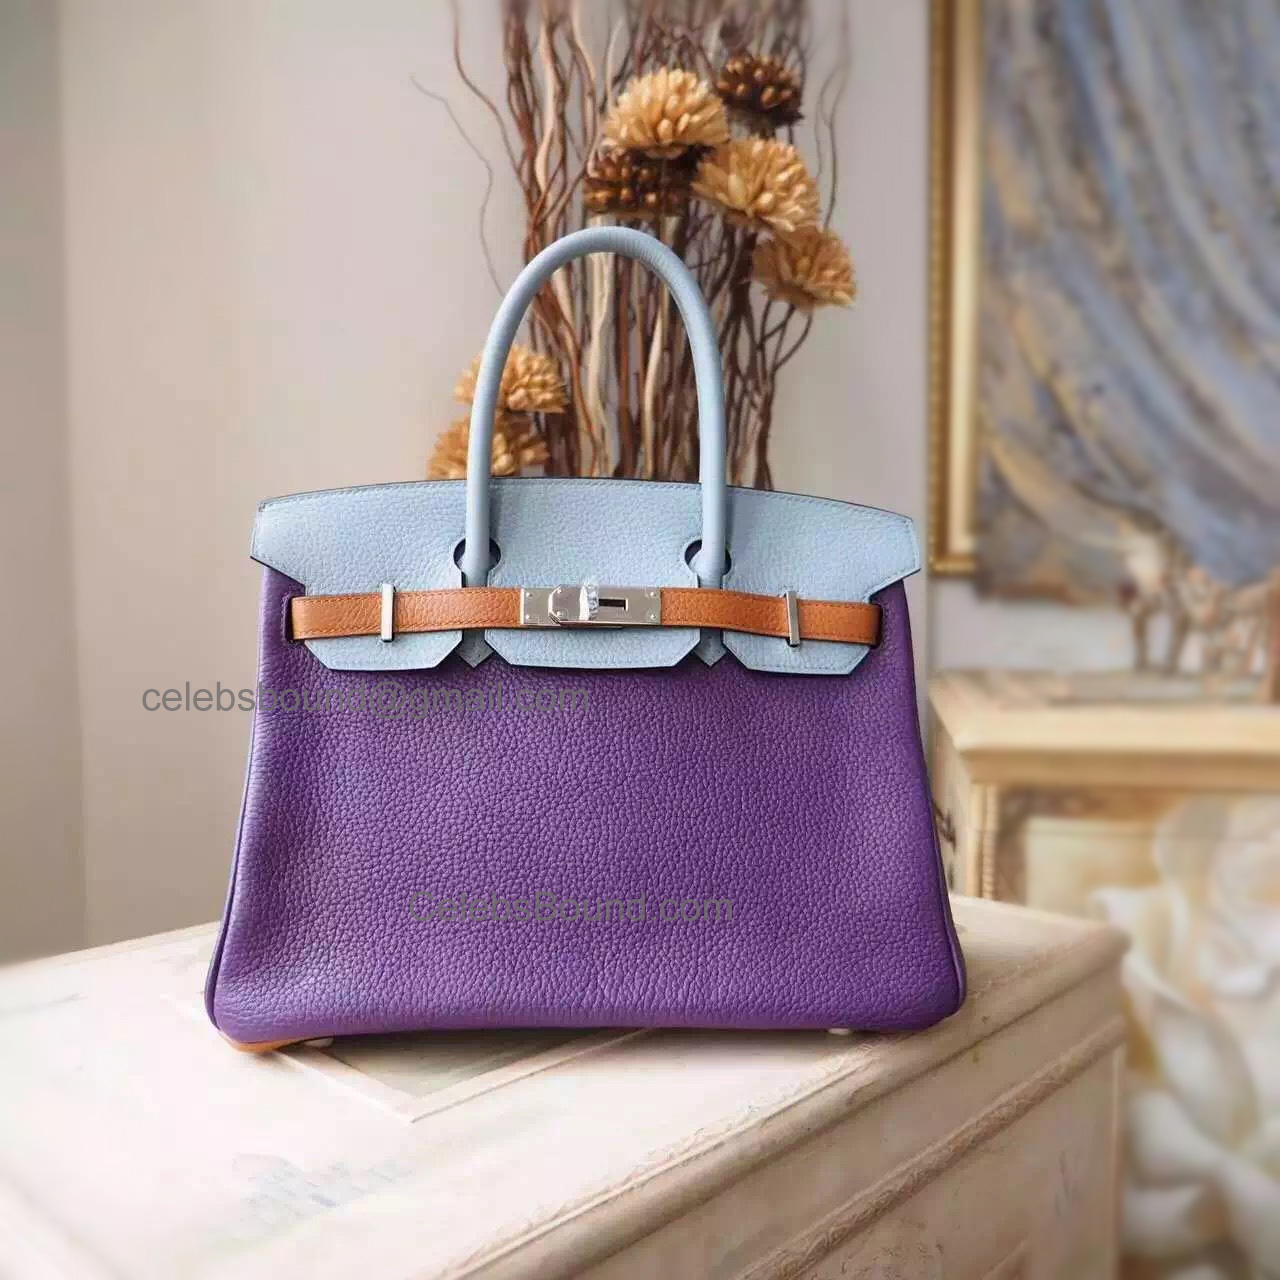 Hand Stitched Hermes Birkin 30 Bag in Multicolored p9 Anemone Togo Calfskin SHW